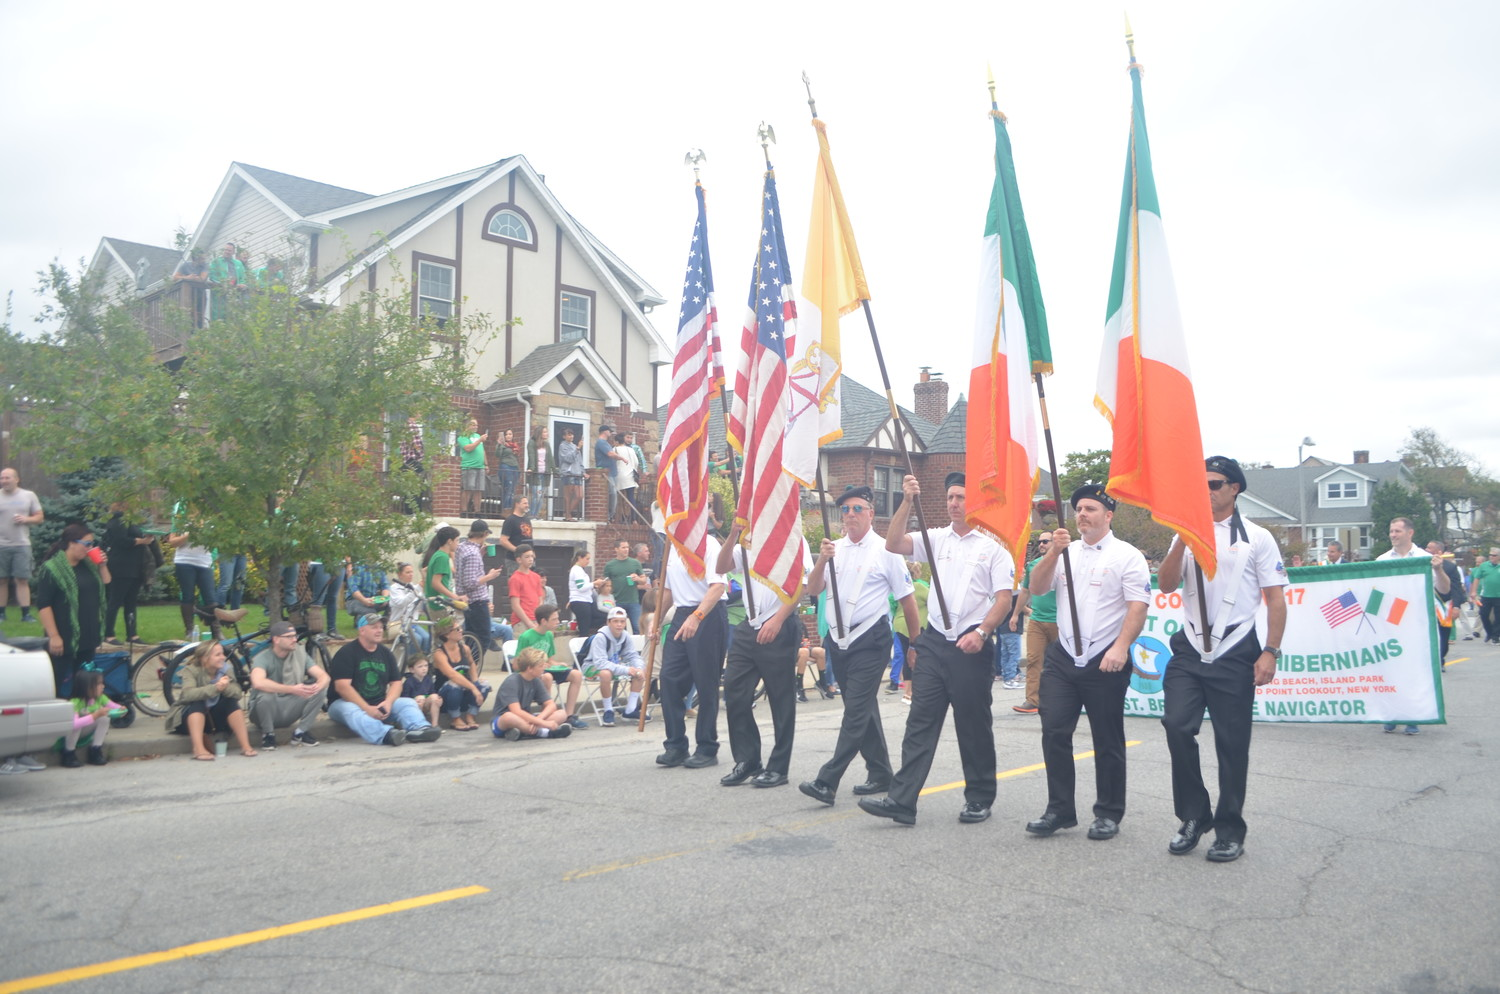 Thousands of people lined West Beech Street to cheer on the 29th annual Saint Brendan the Navigator Irish Heritage Day Parade on Saturday.